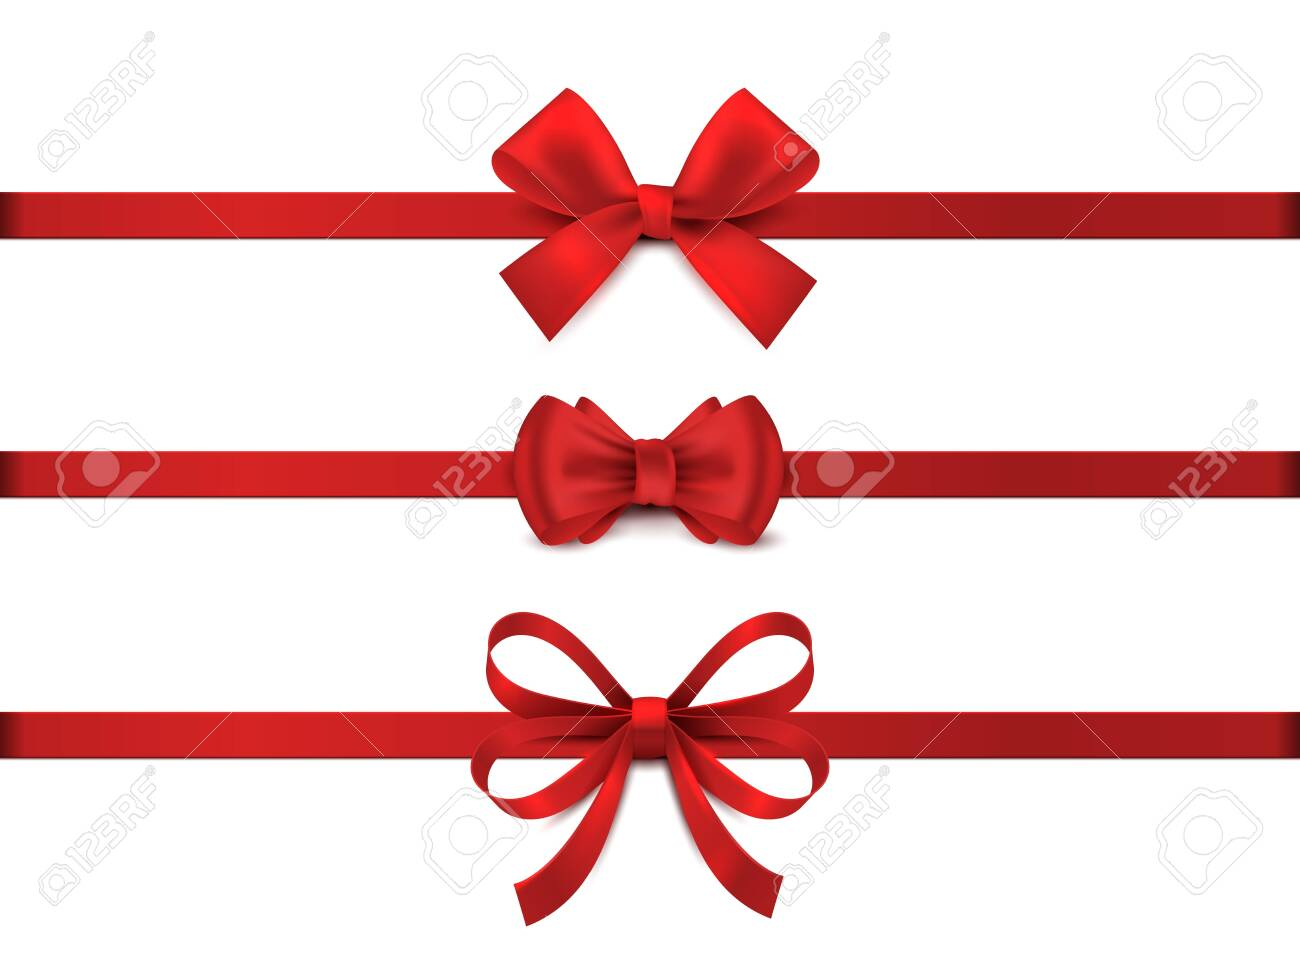 Red realistic bow. Horizontal red ribbon collection. Holiday gift decoration, valentine present tape knot, shiny sale ribbons set. Vector illustration christmas tie for gifts on white background - 134022046